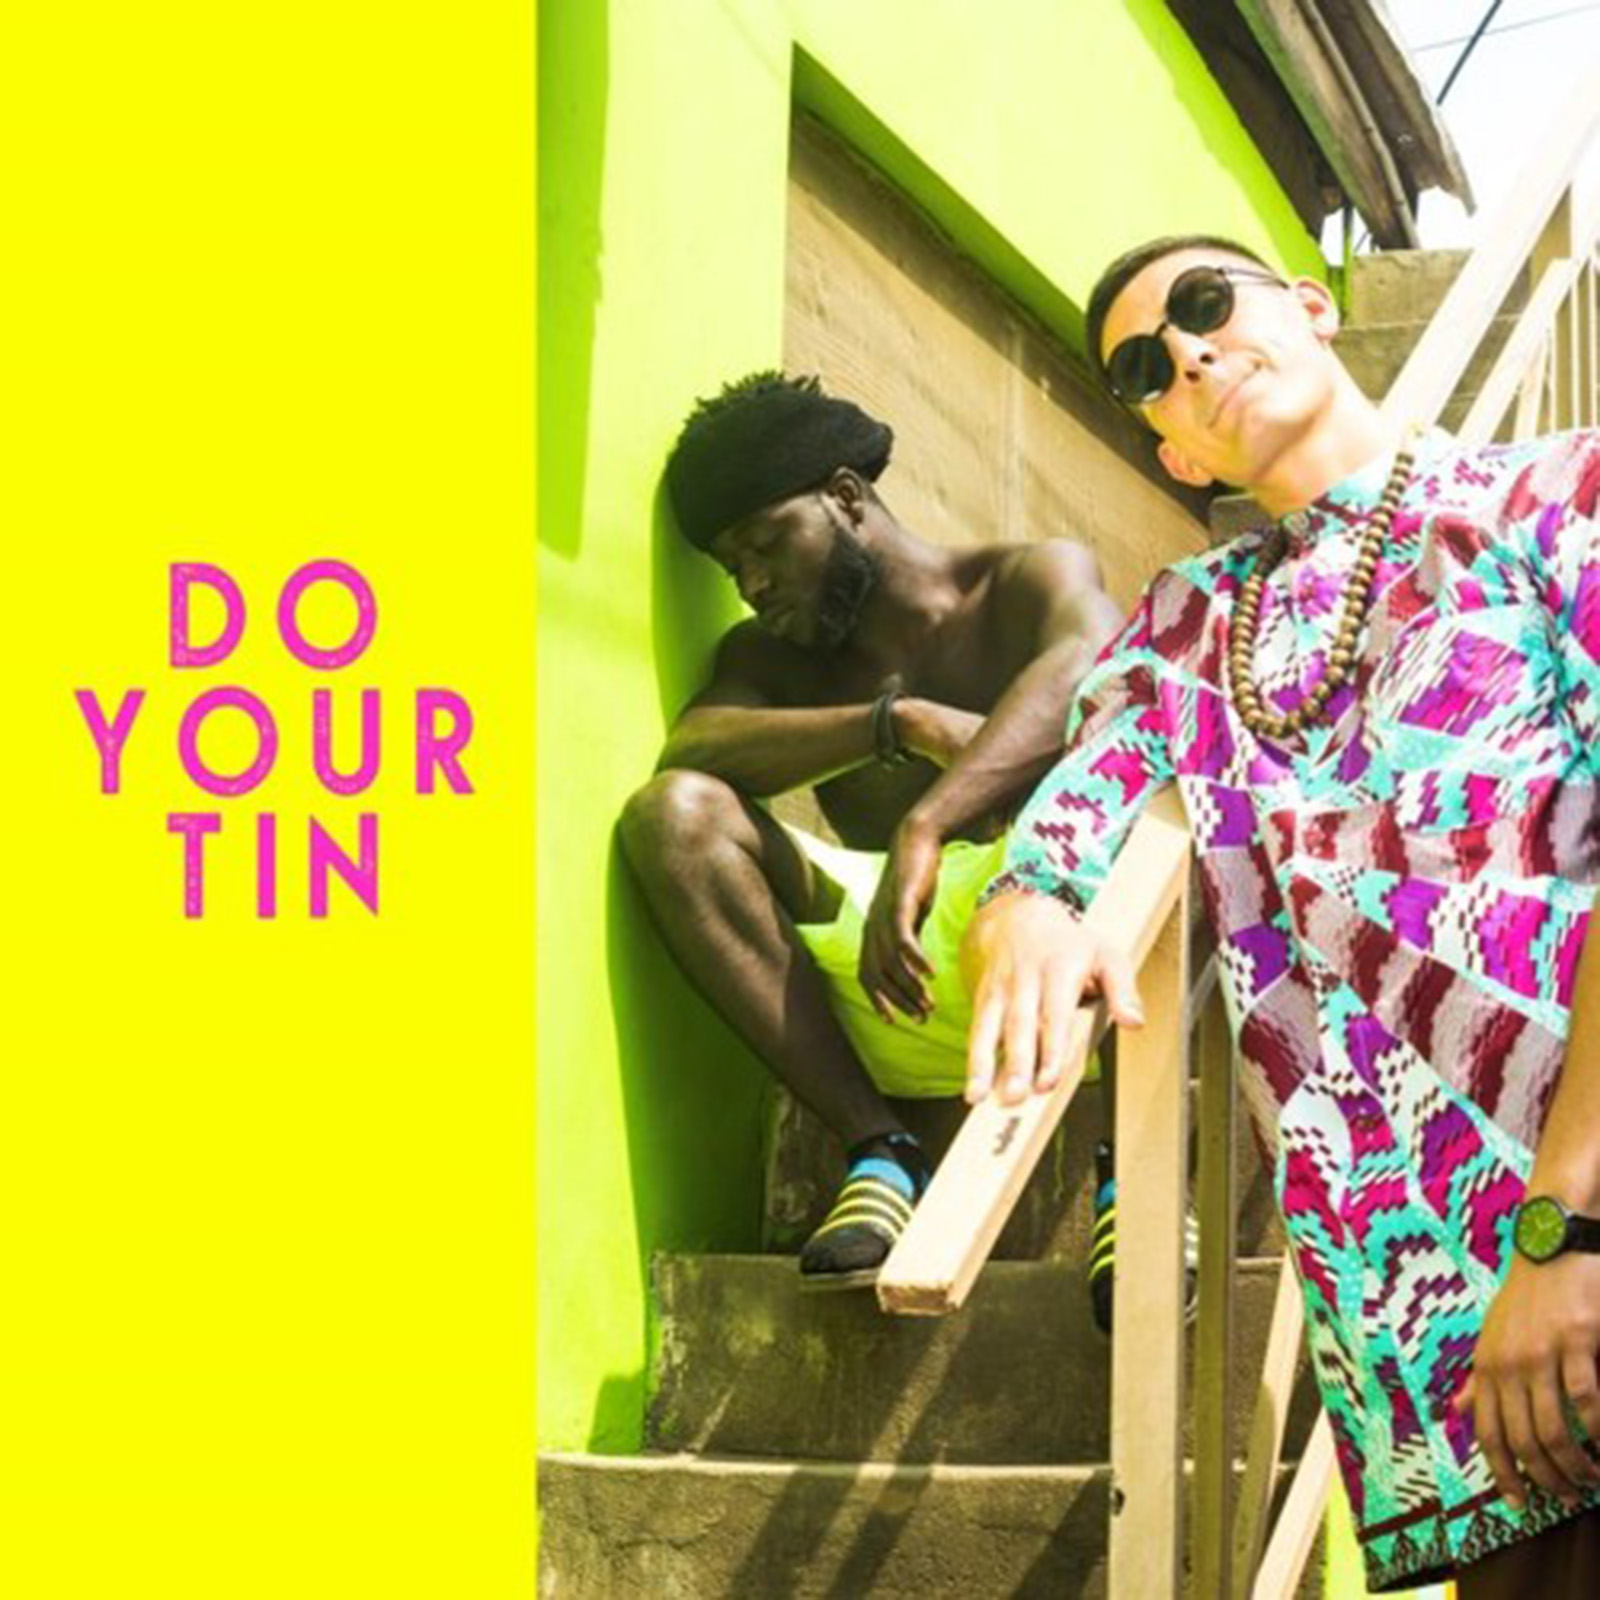 Do Your Tin by Toby Tabu feat. B4Bonah